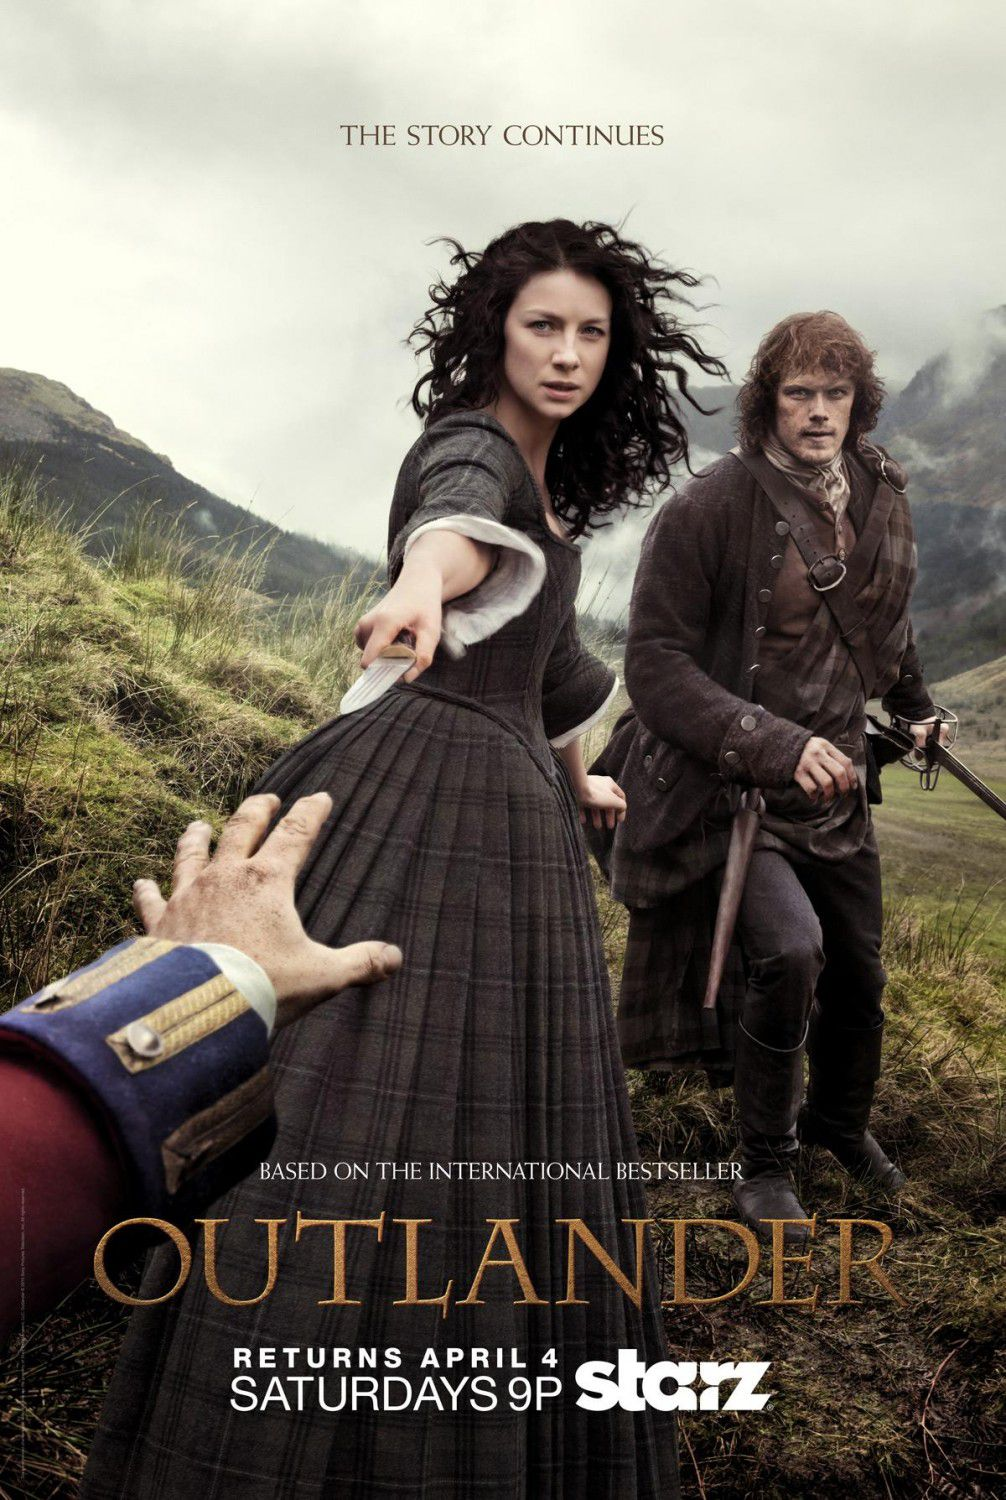 Outlander - Série (2014) streaming VF gratuit complet